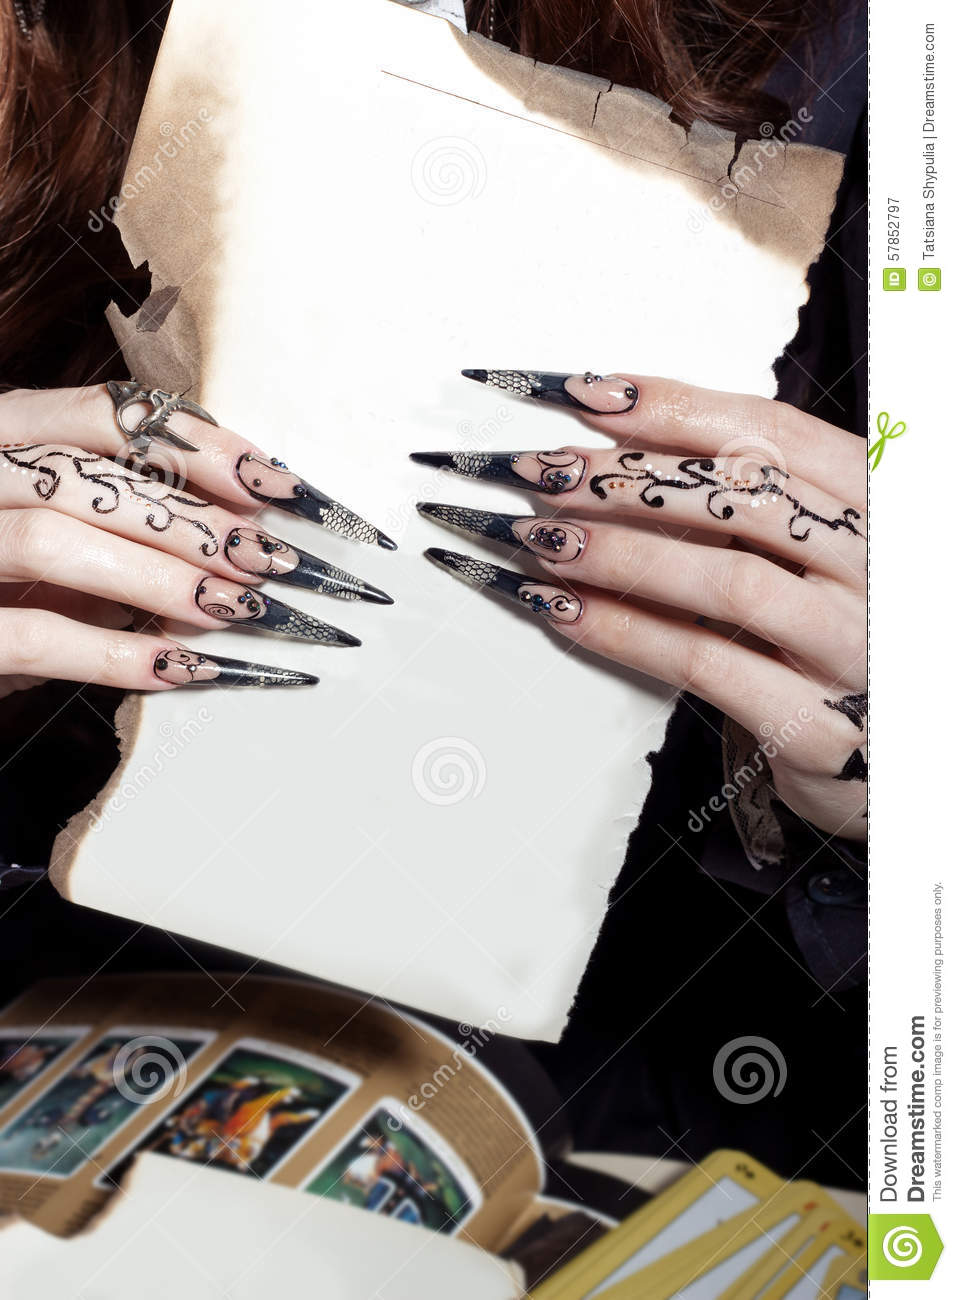 Beautiful Hands With Long Acrylic Witch Black Nails Holding A White Sheet In The Hands Of Stock